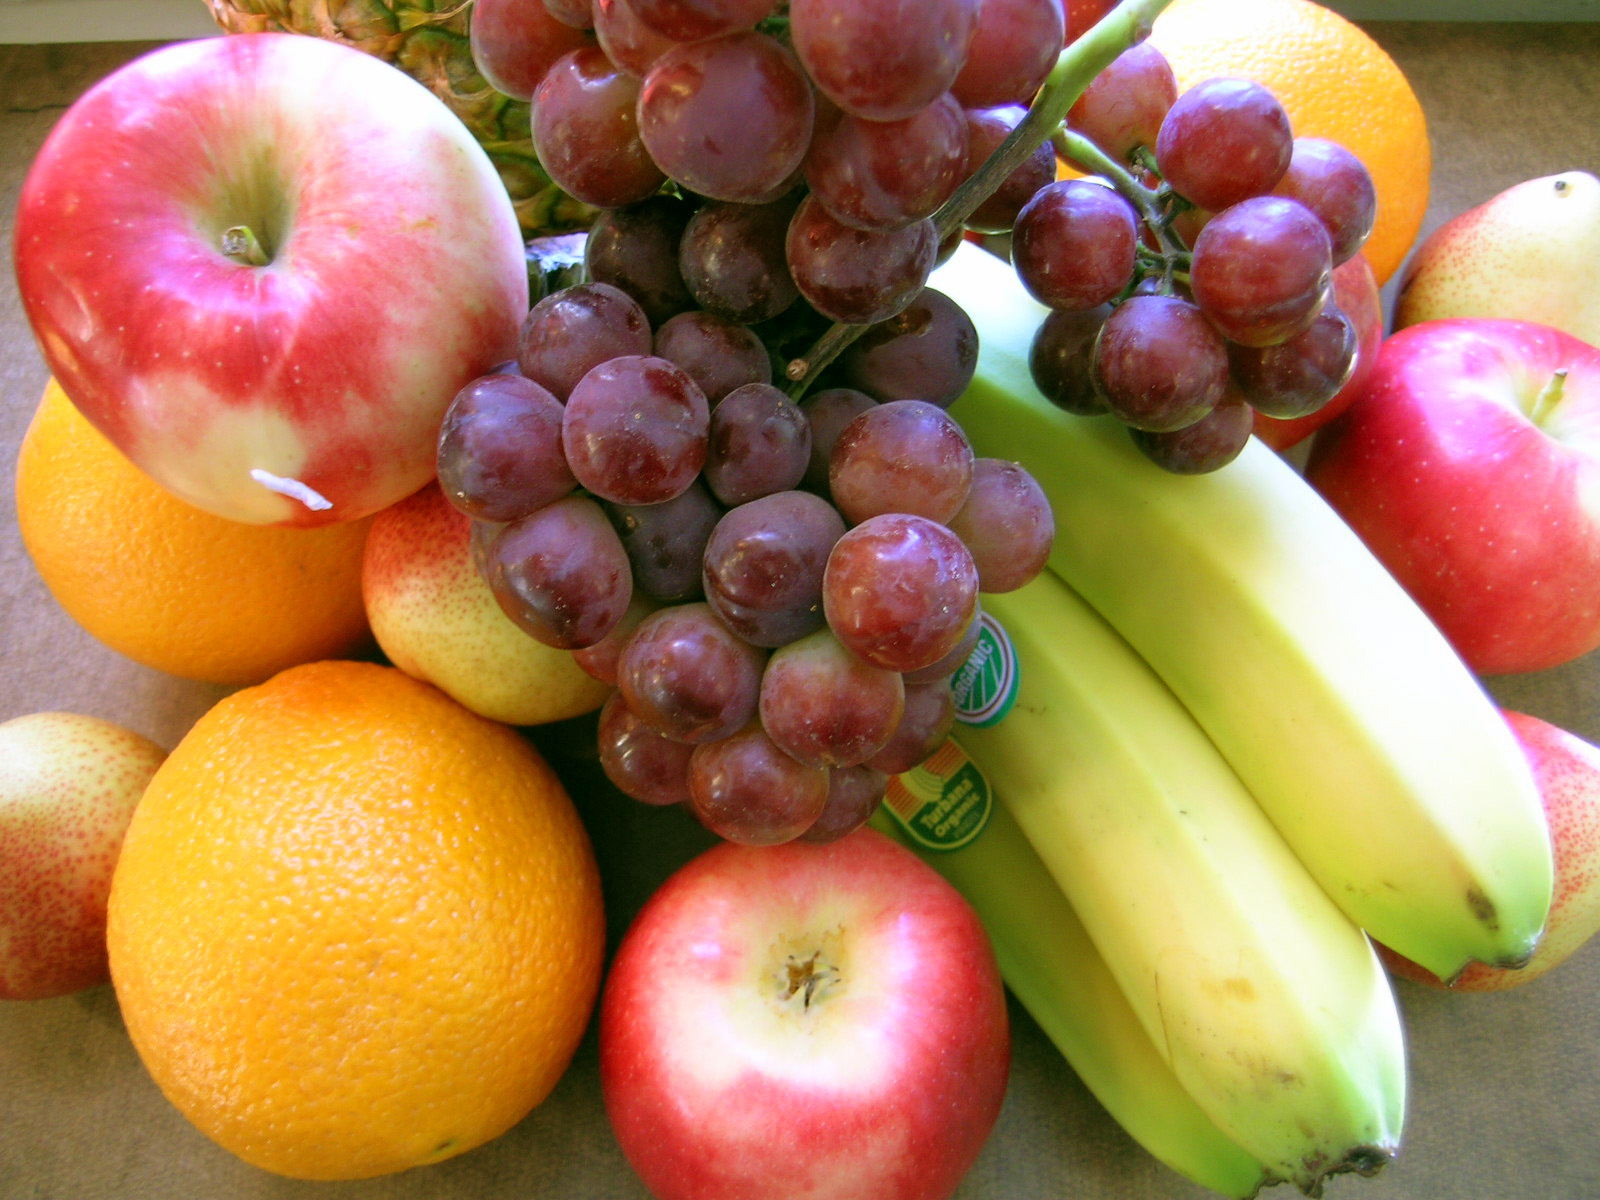 Snack On Fruits Instead Of Junk Food